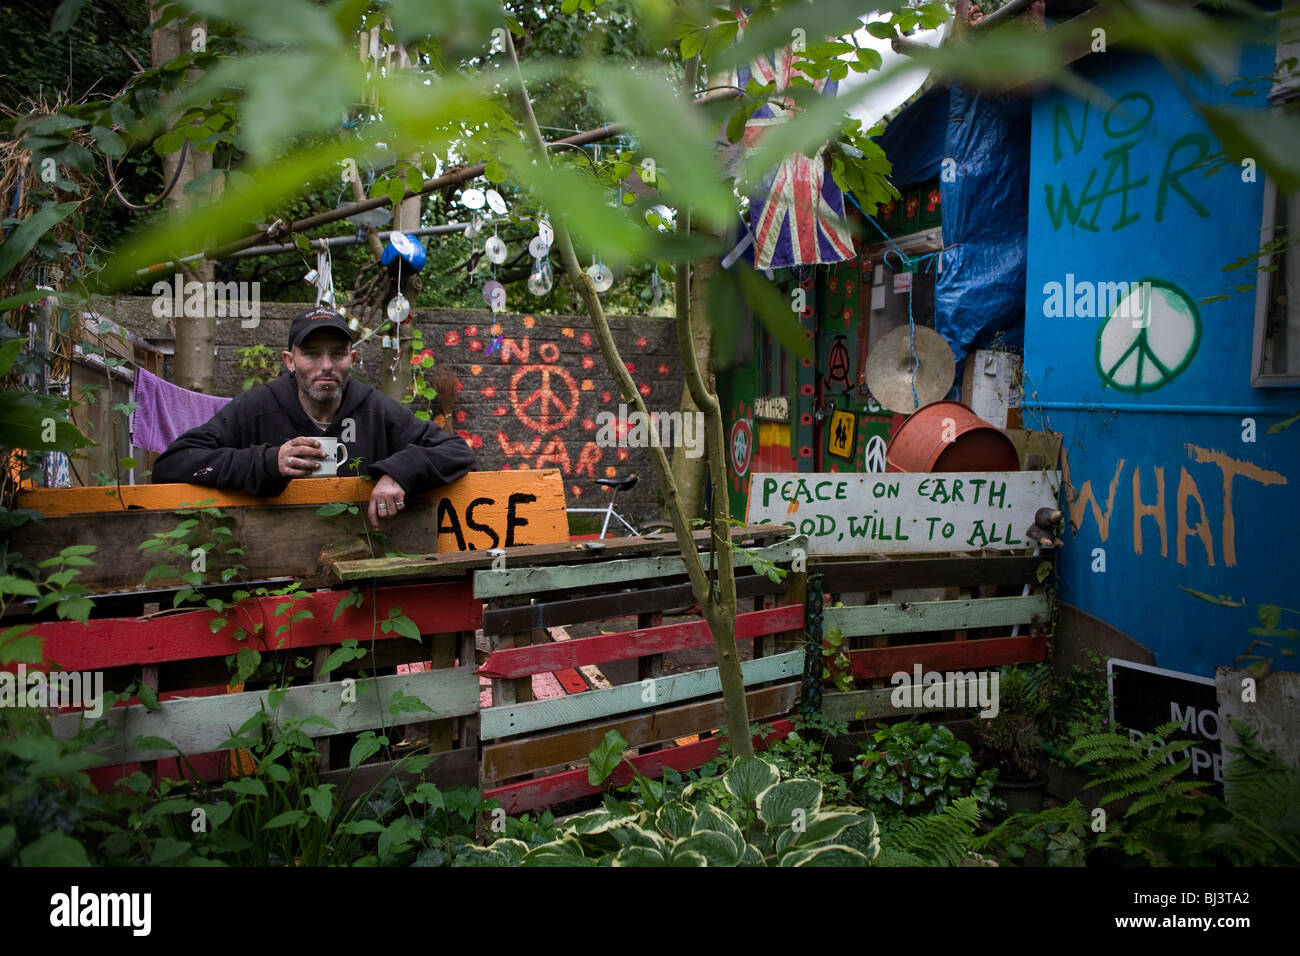 David Reynolds (aka Eco) is a long-term activist, campaigner in the peace movement and resident of the Faslane Peace Stock Photo